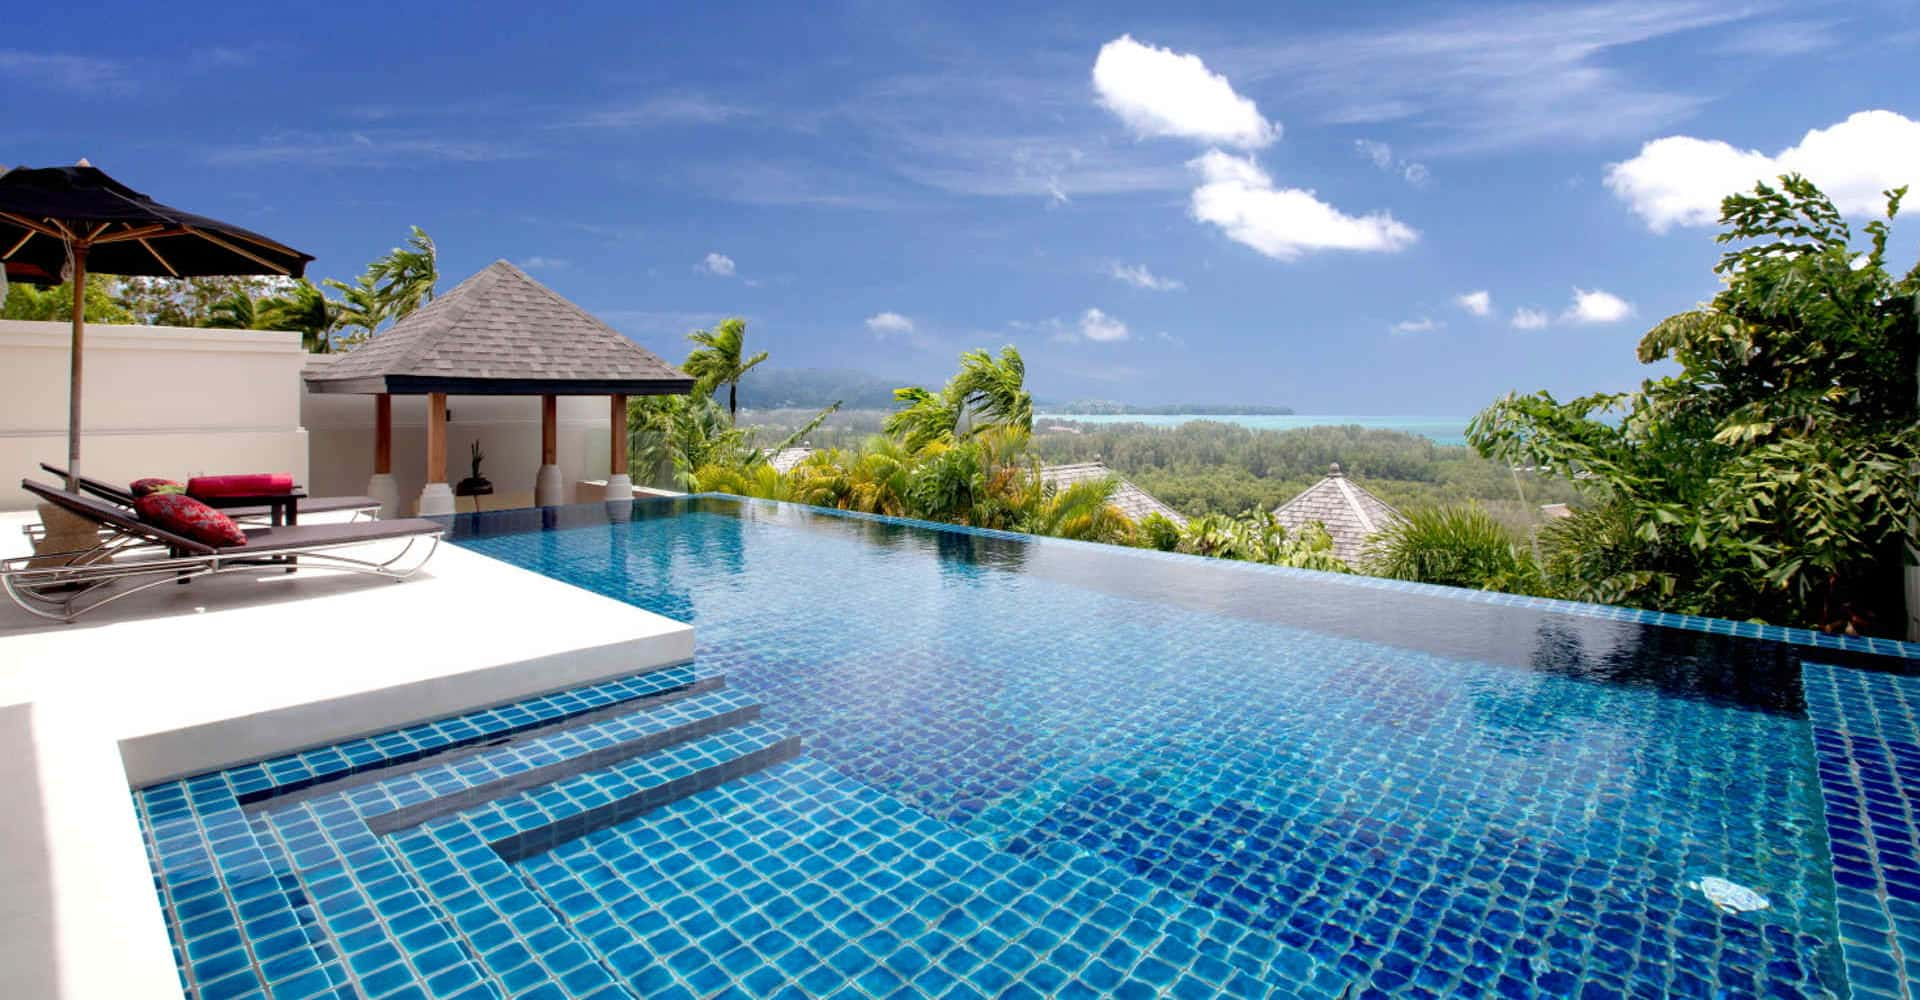 Villas & Suites - The Pavilions Phuket